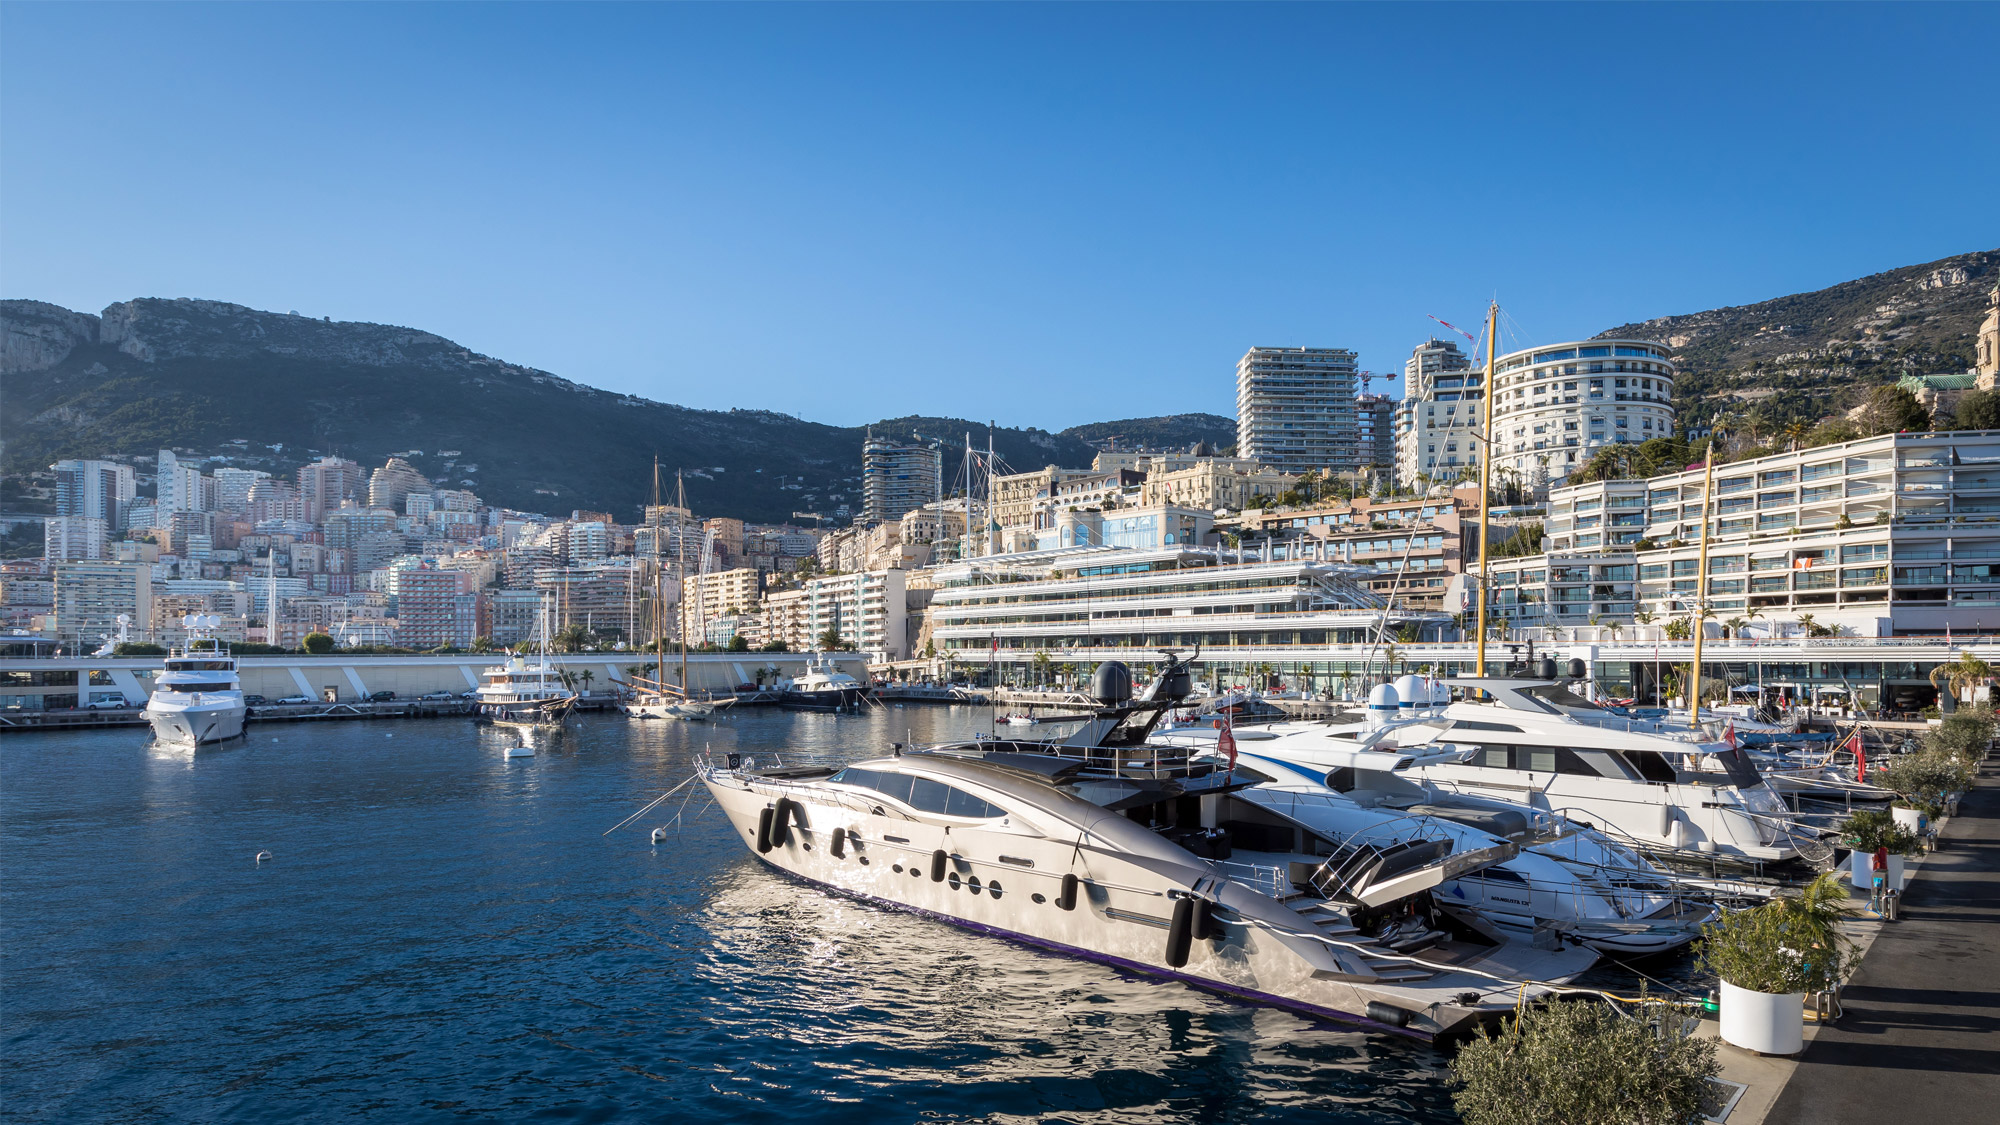 Side view of yachts and Monaco real estate in Port Hercule, Monaco